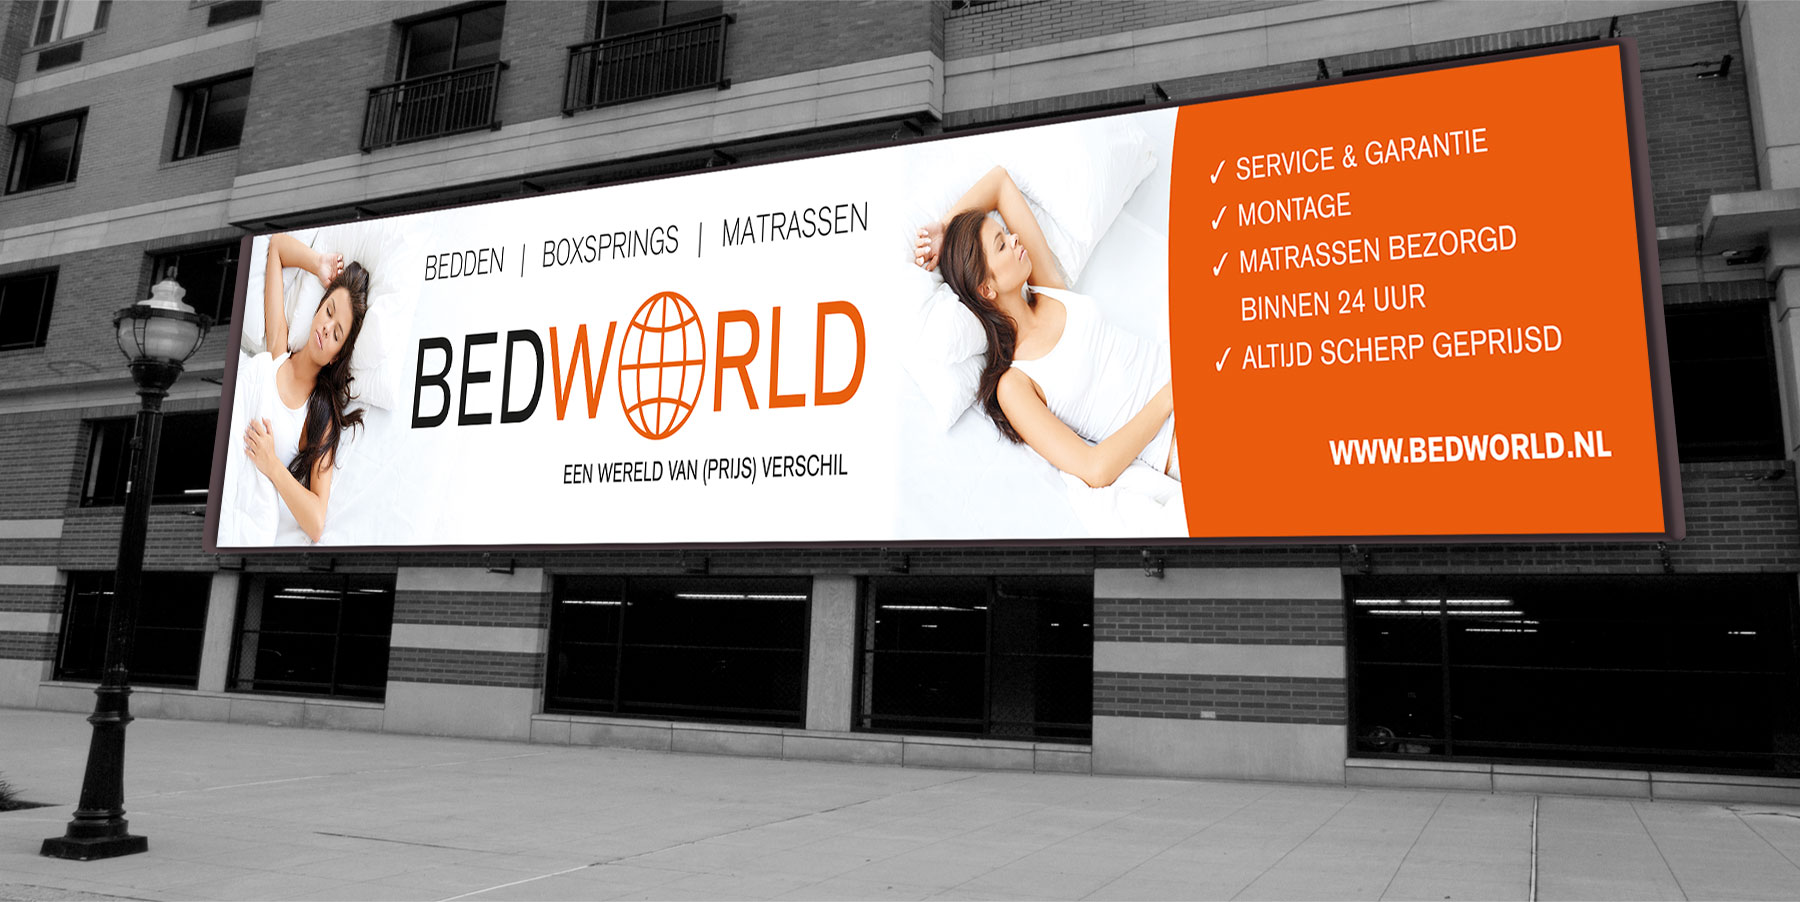 BedWorld Amsterdam, Bedworld, Studio Kaboem!, Zoetemelk Media Services, Bannier 20 meter,